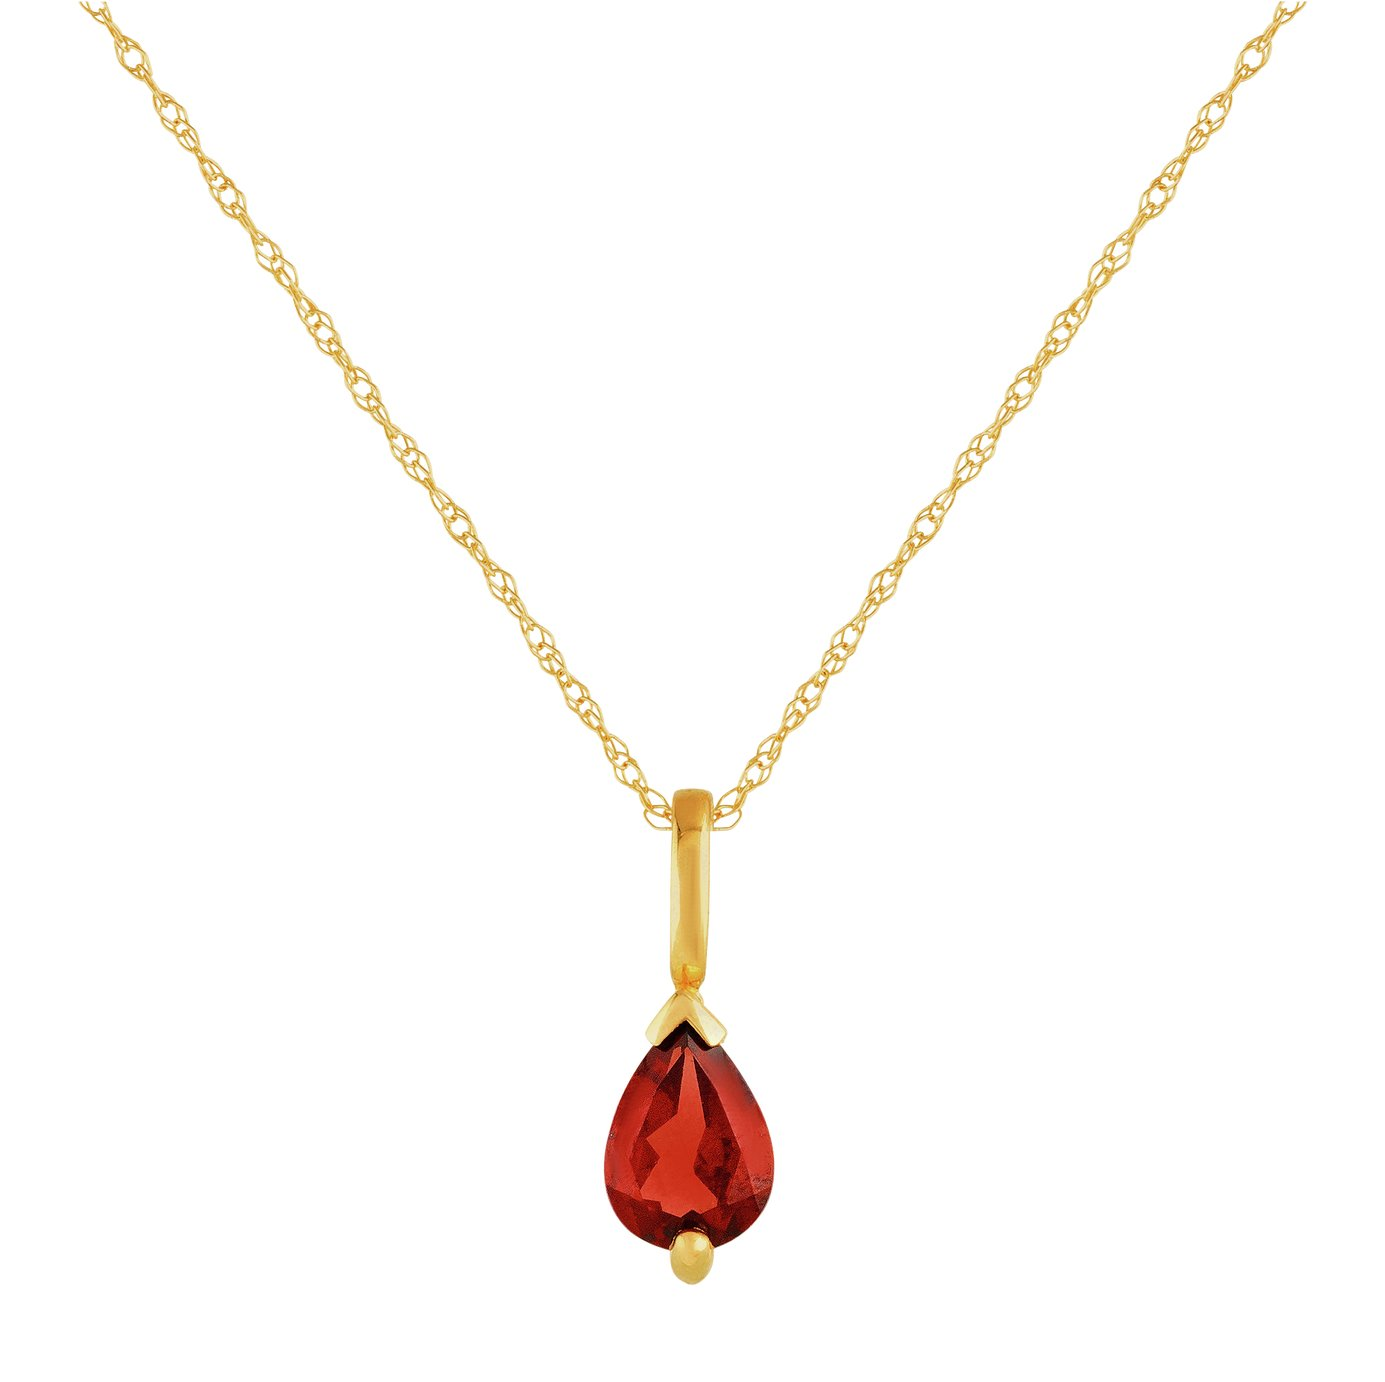 Revere 9ct Gold Pear Garnet Pendant Necklace